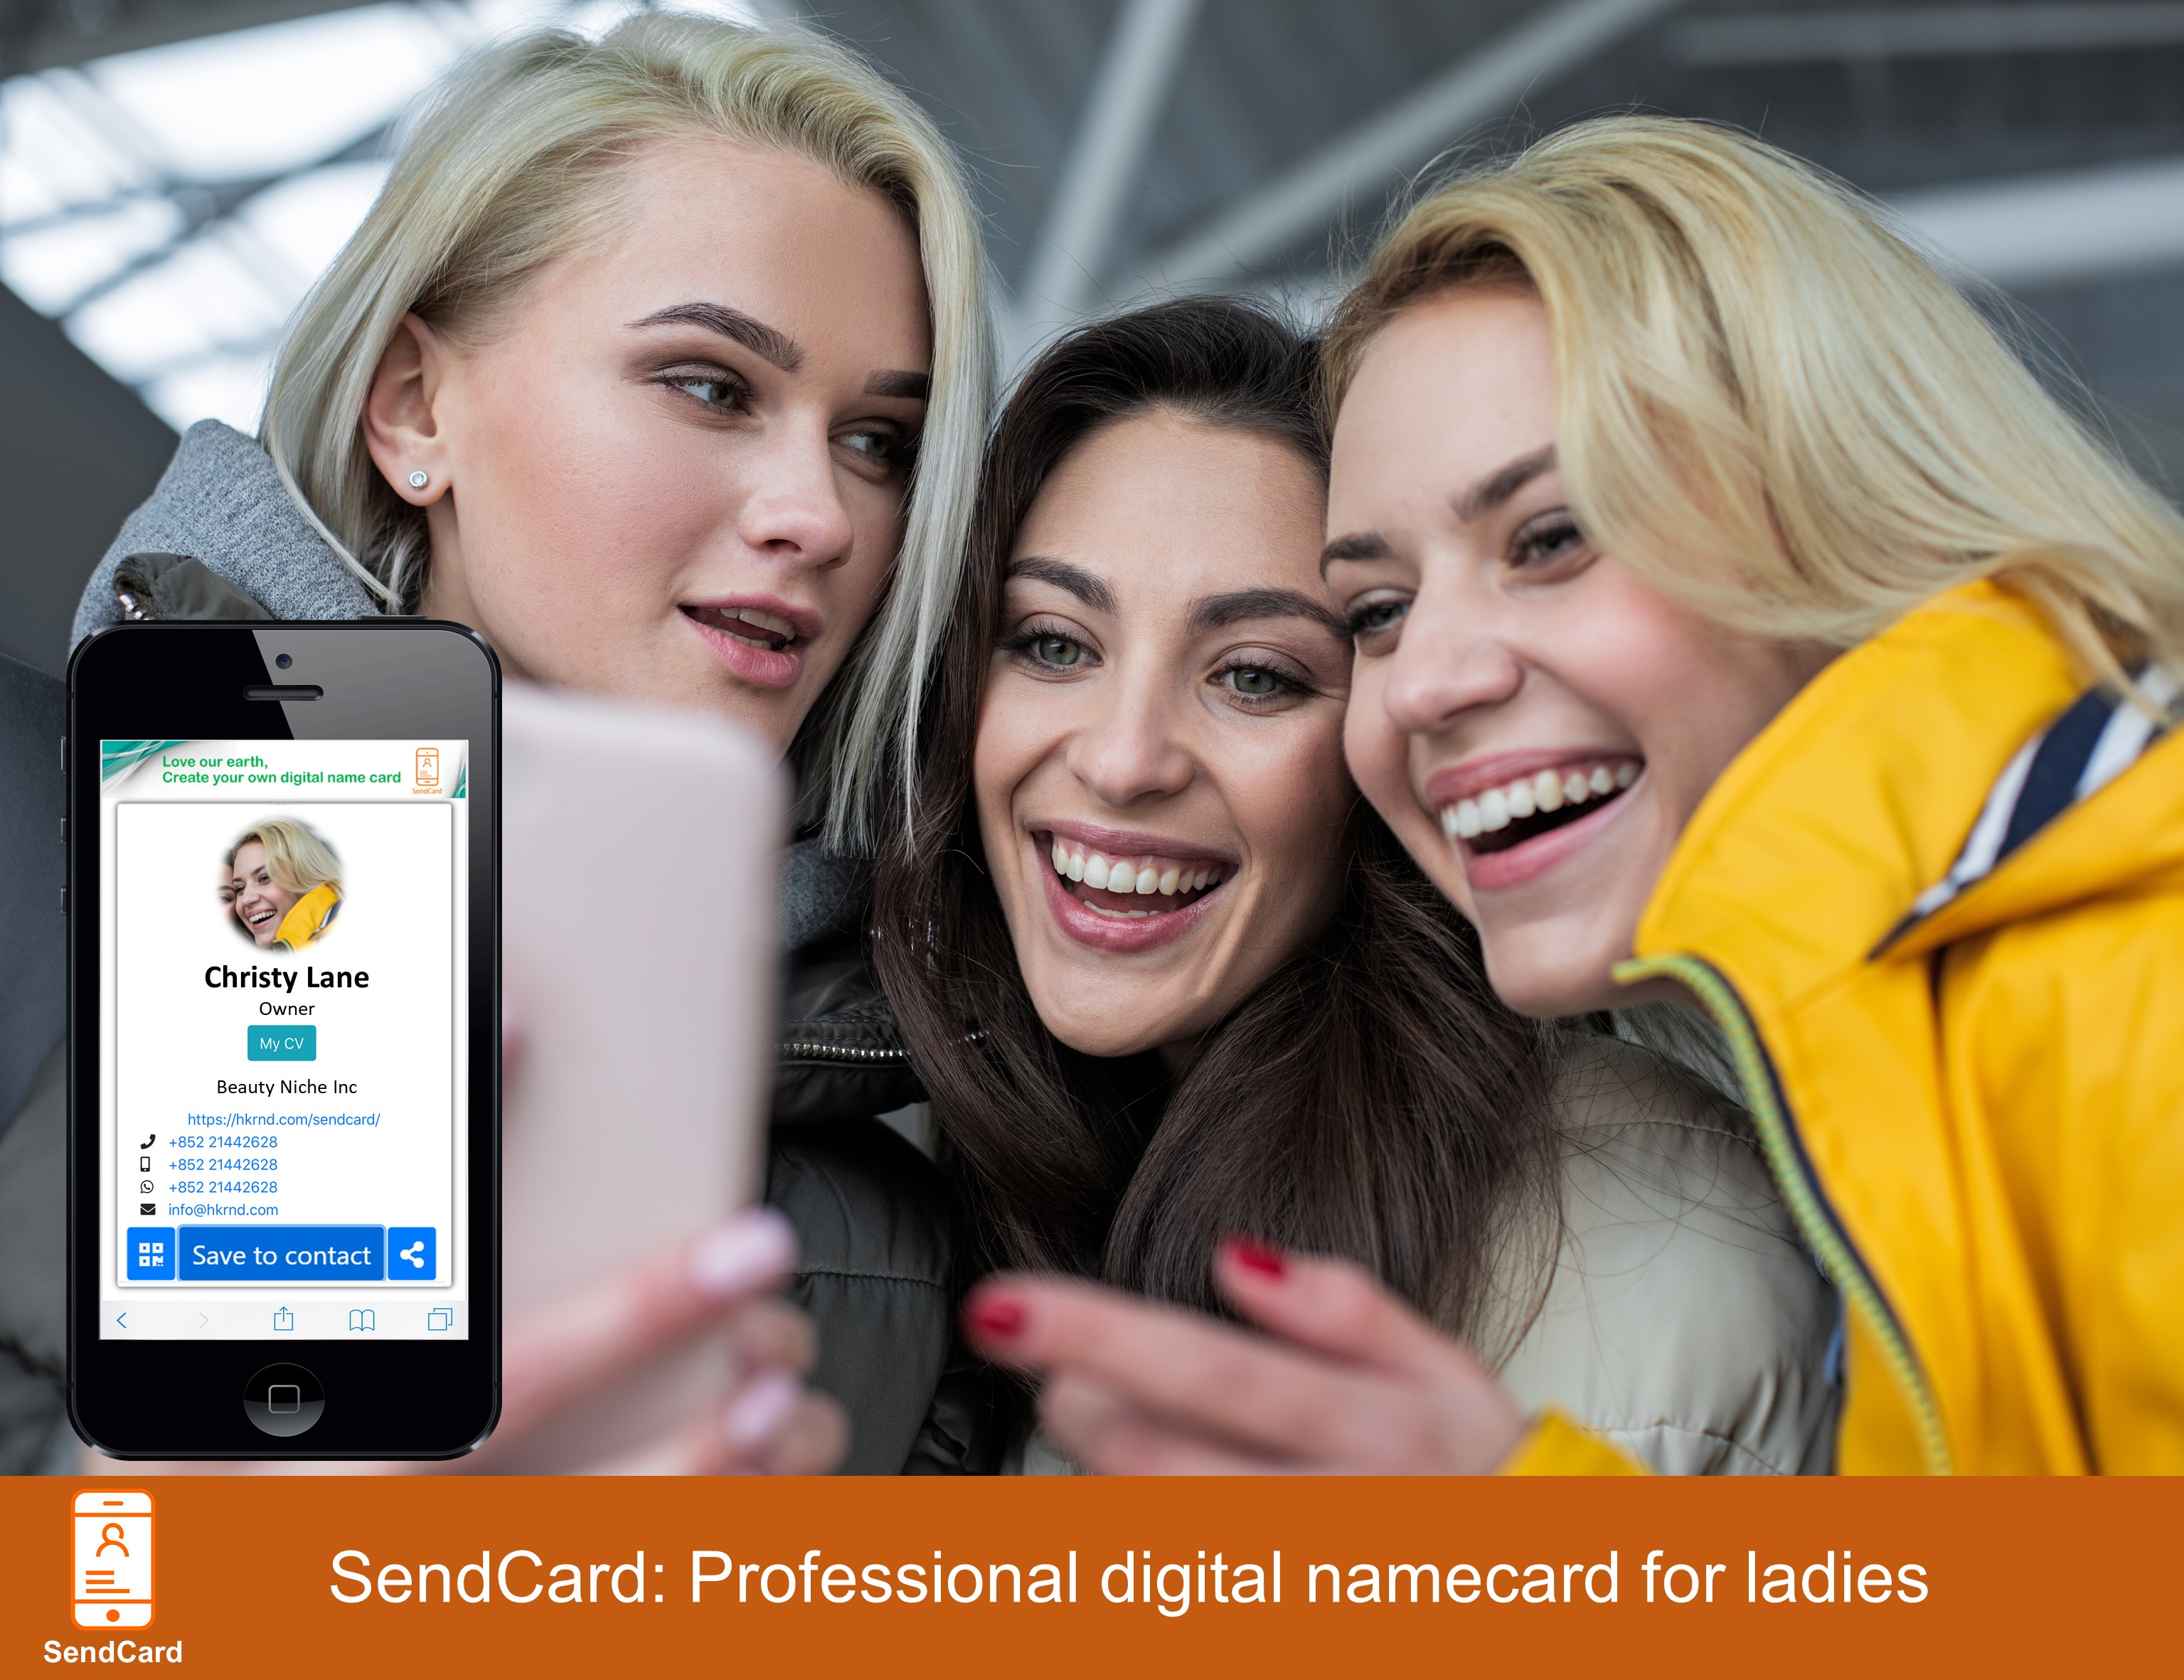 Three girls amazed using SendCard